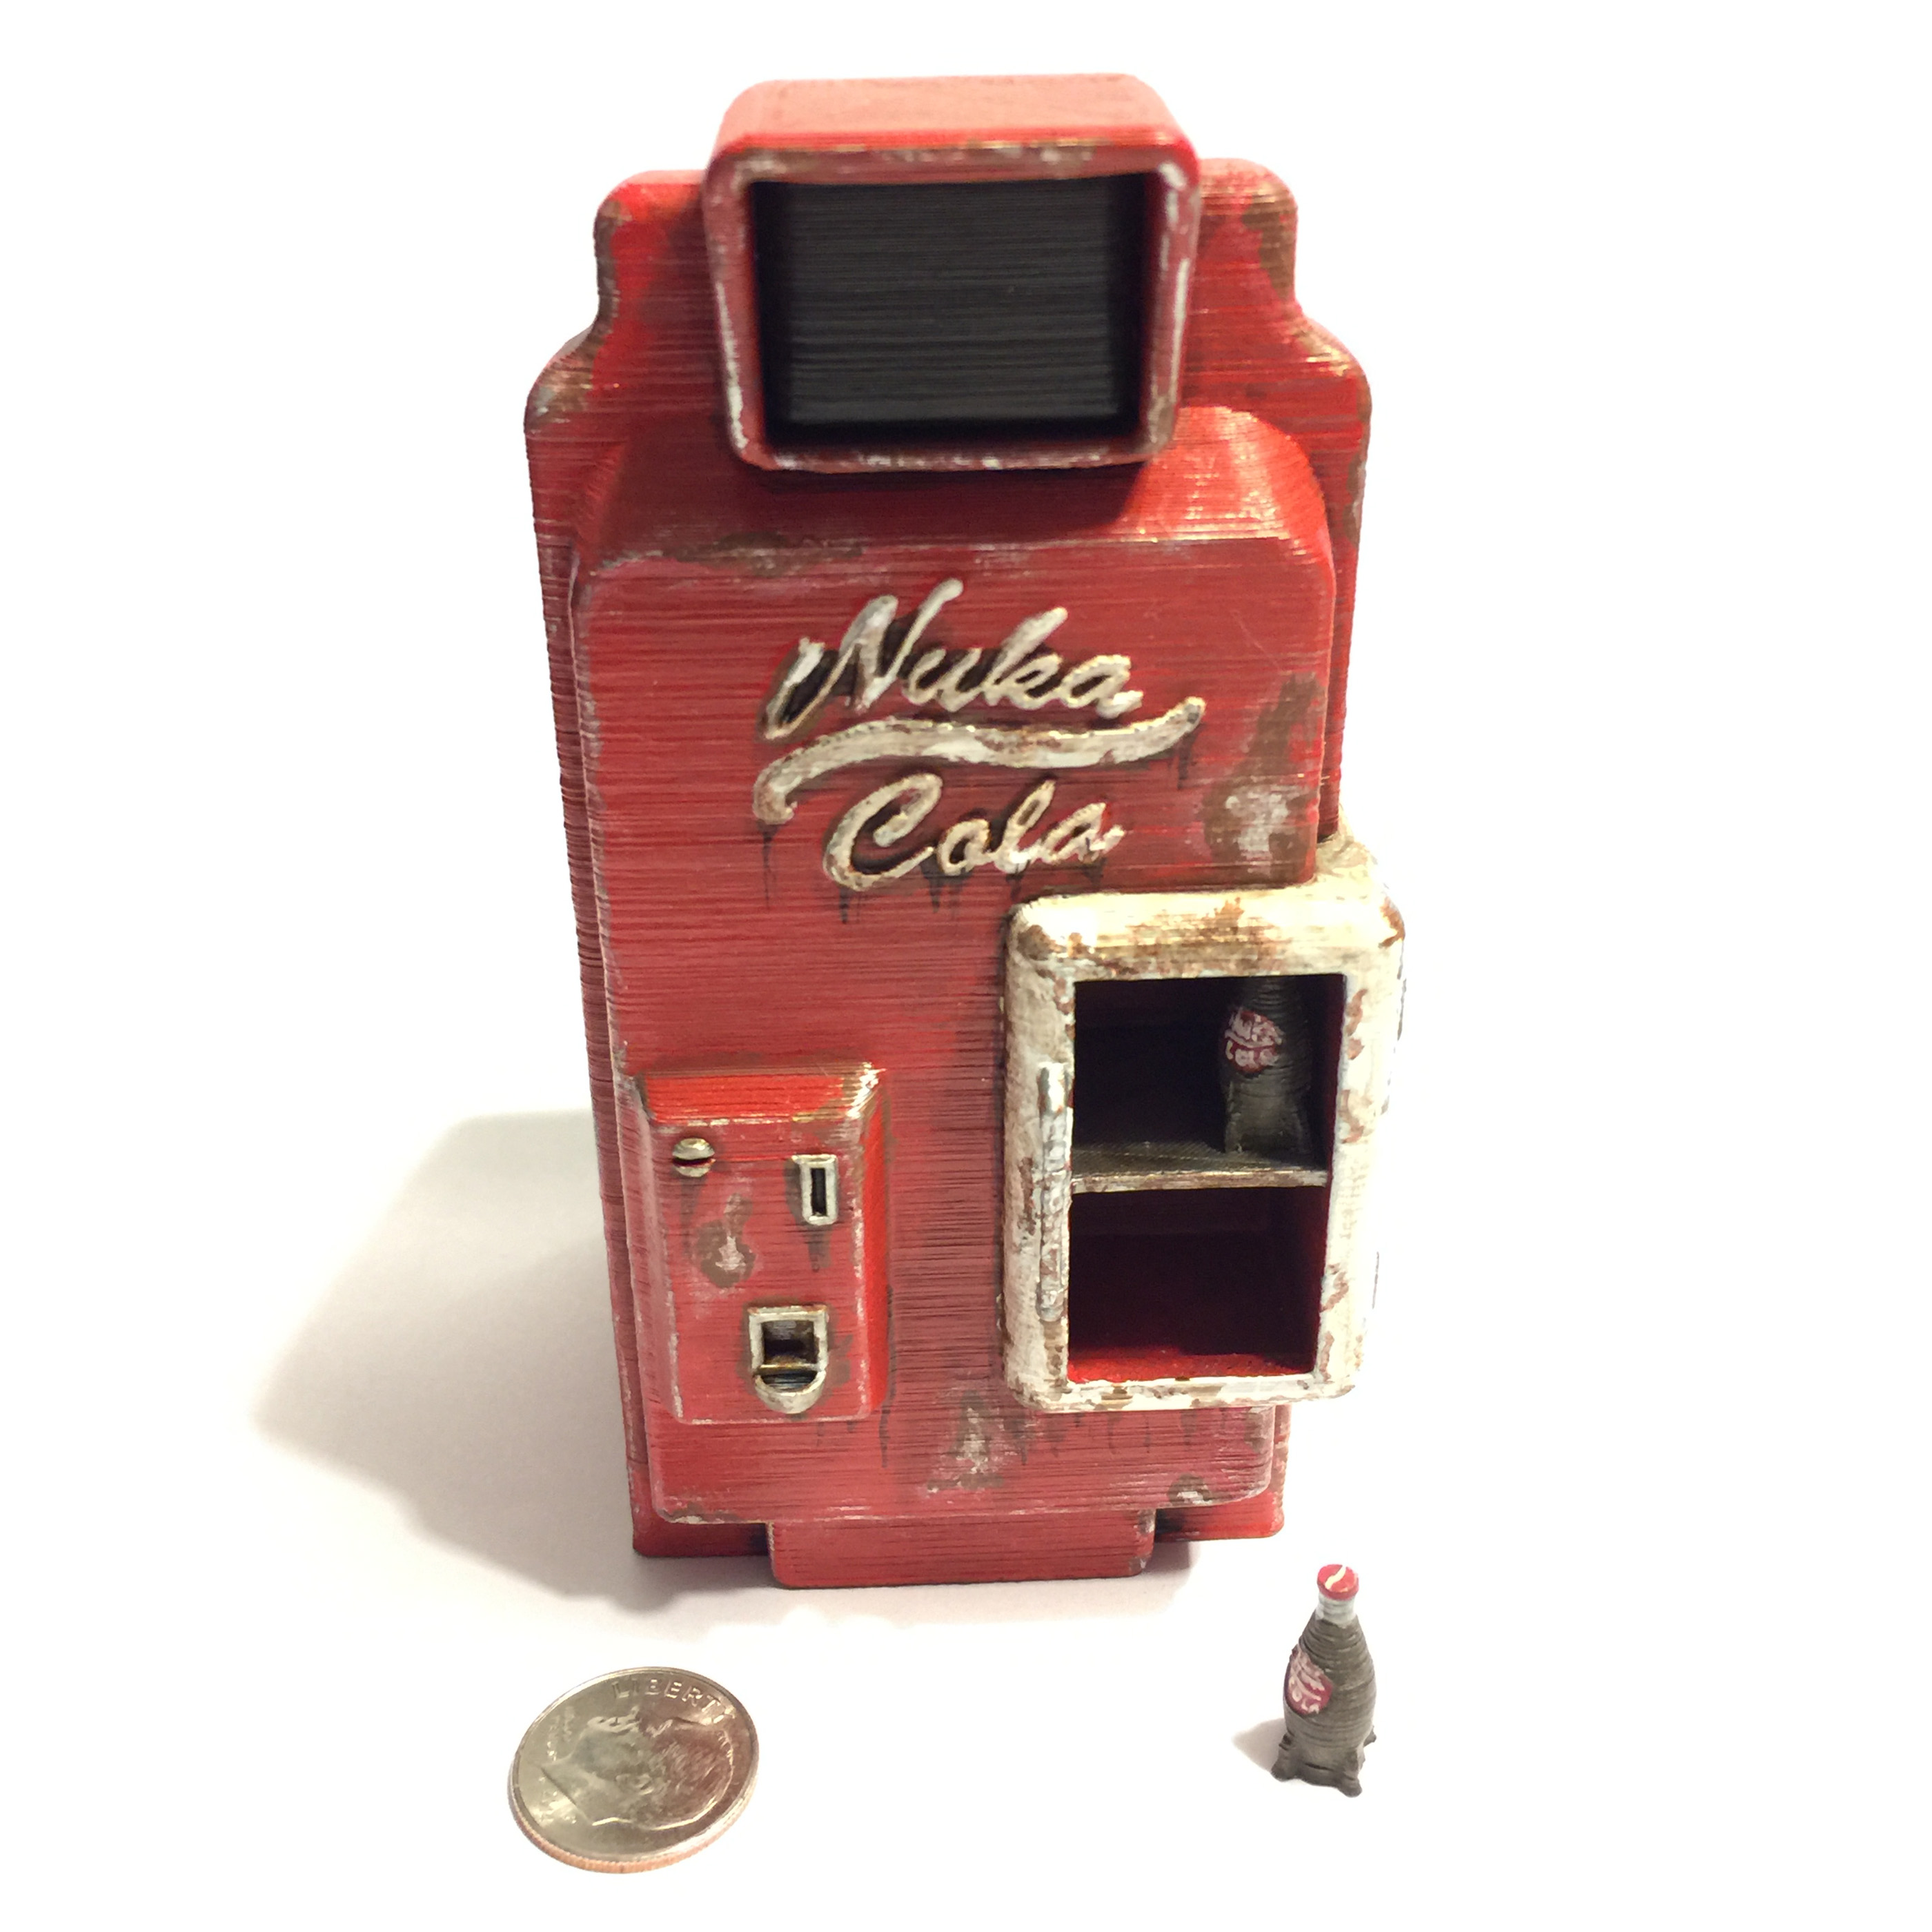 3d printed fallout 4 nuka cola vending machine pic 4 htxt africa